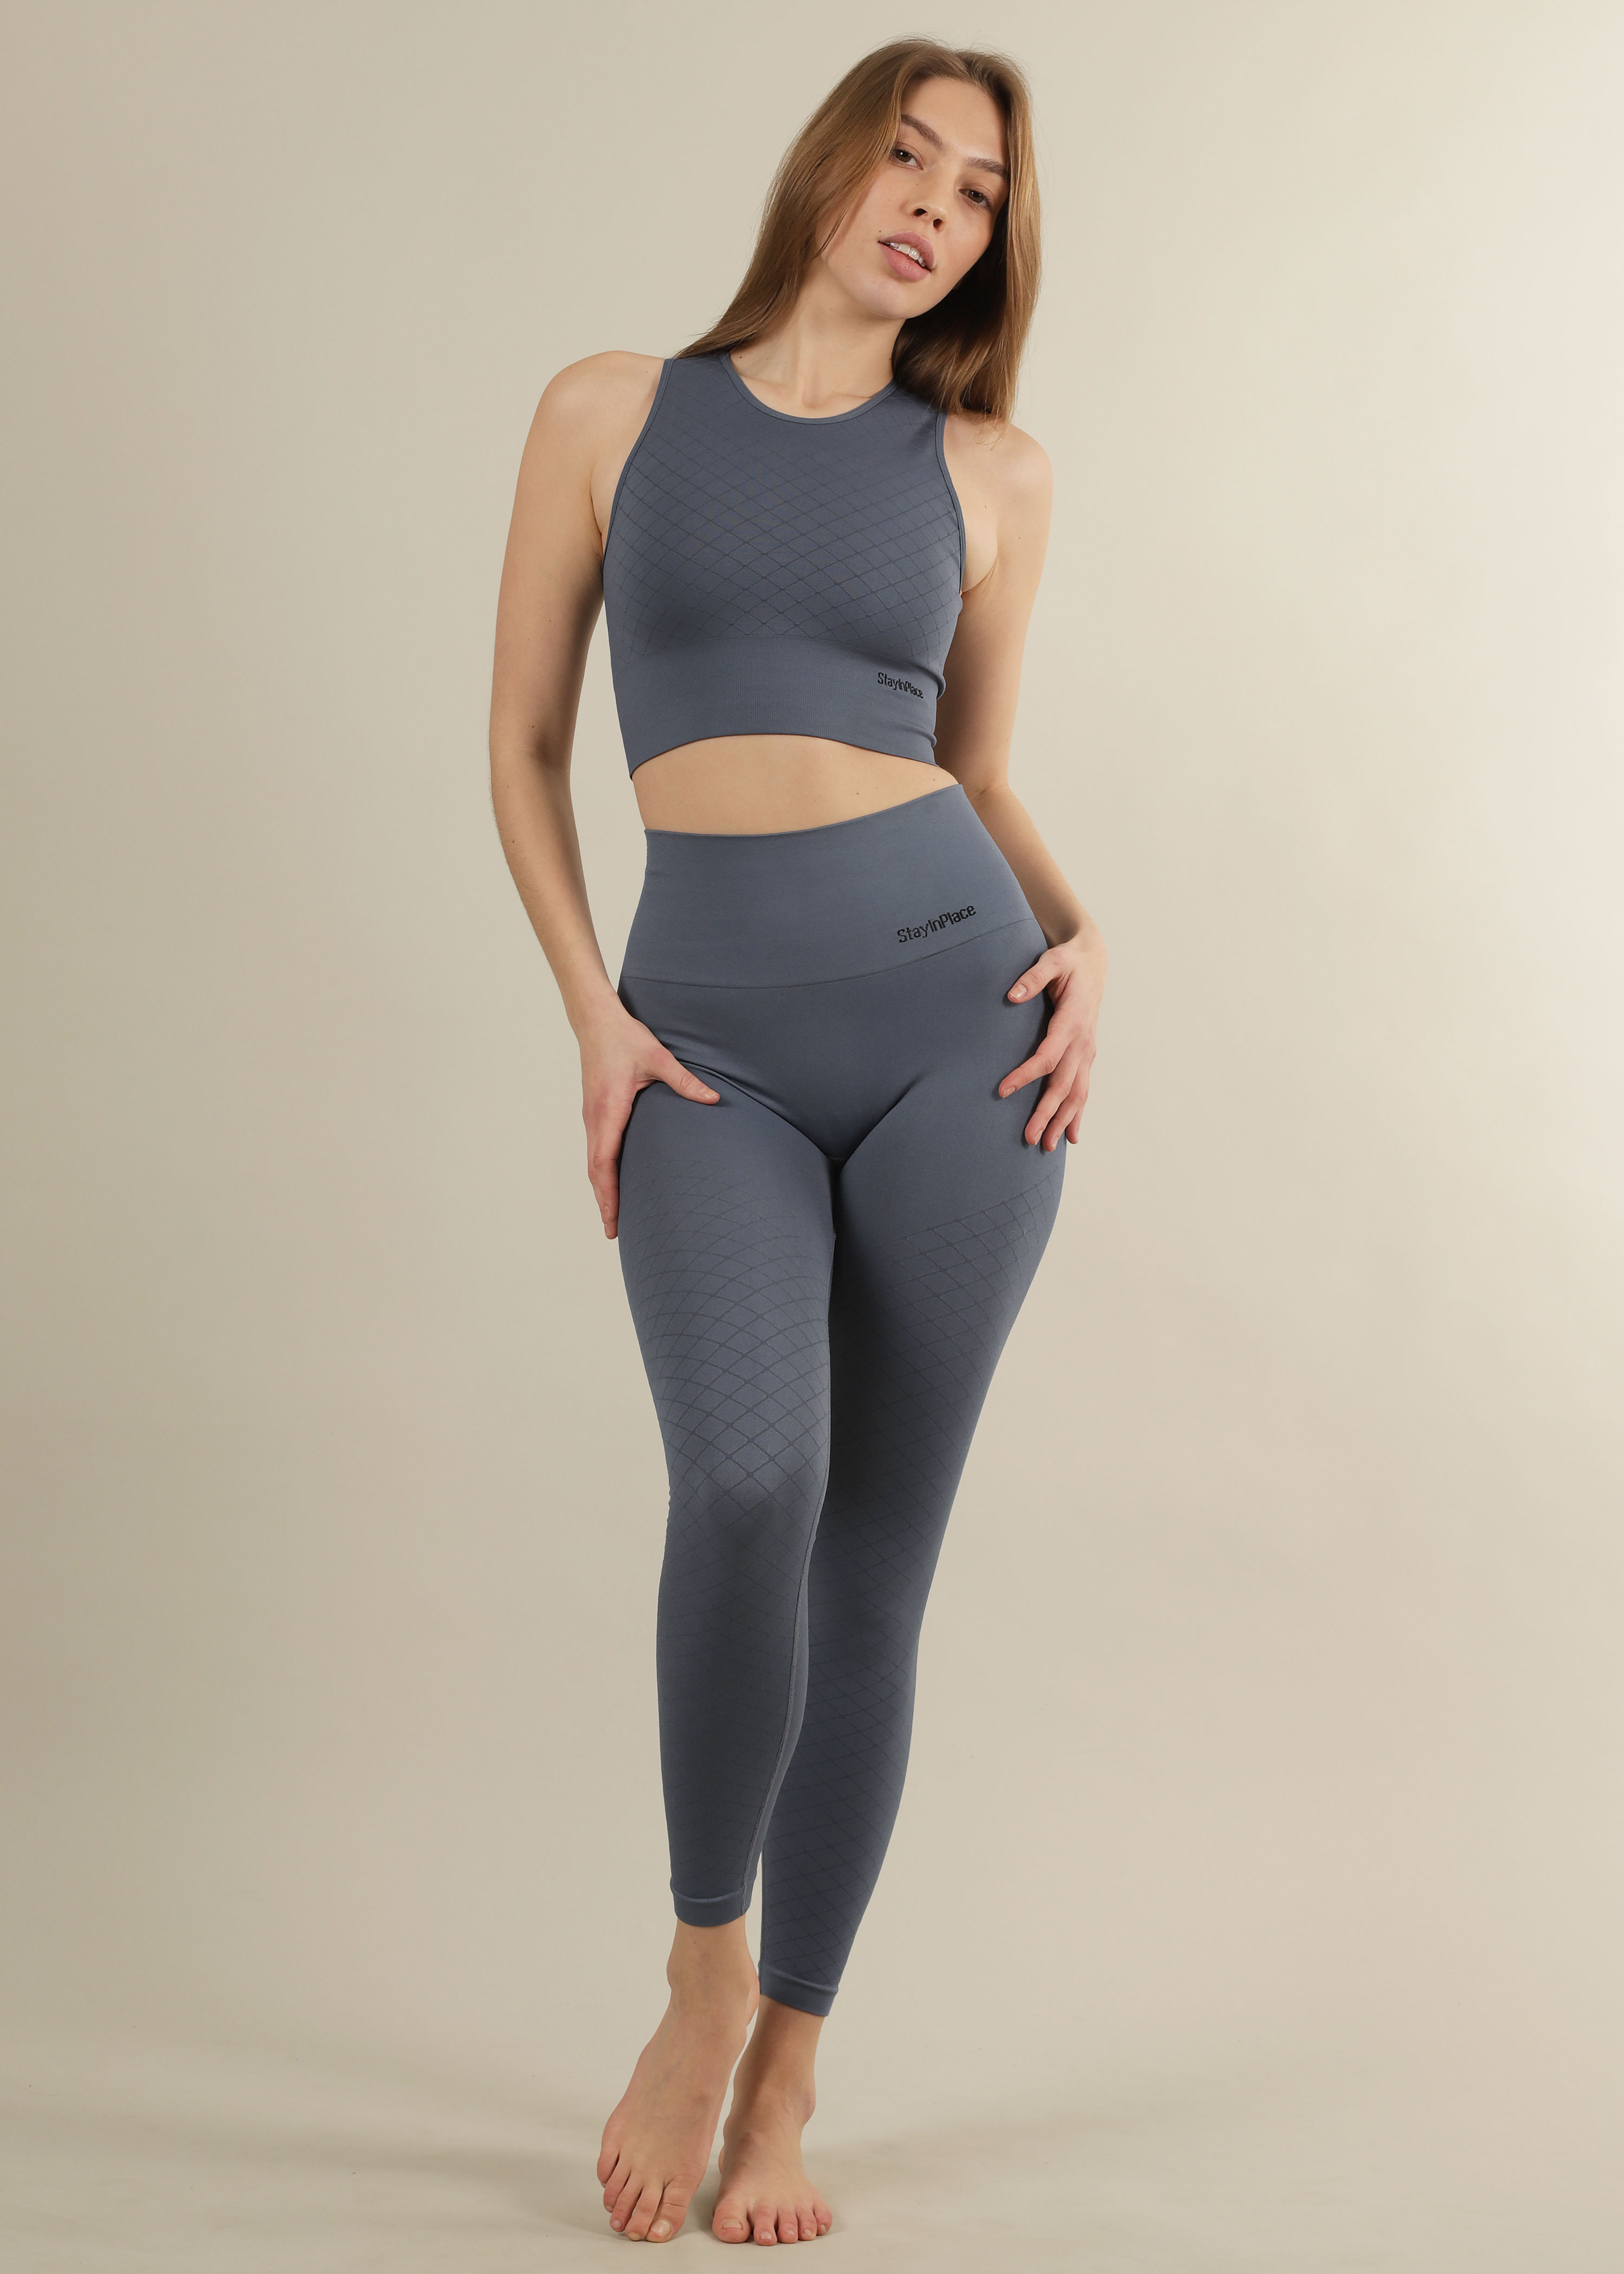 SHOP THE LOOK - SEAMLESS SET